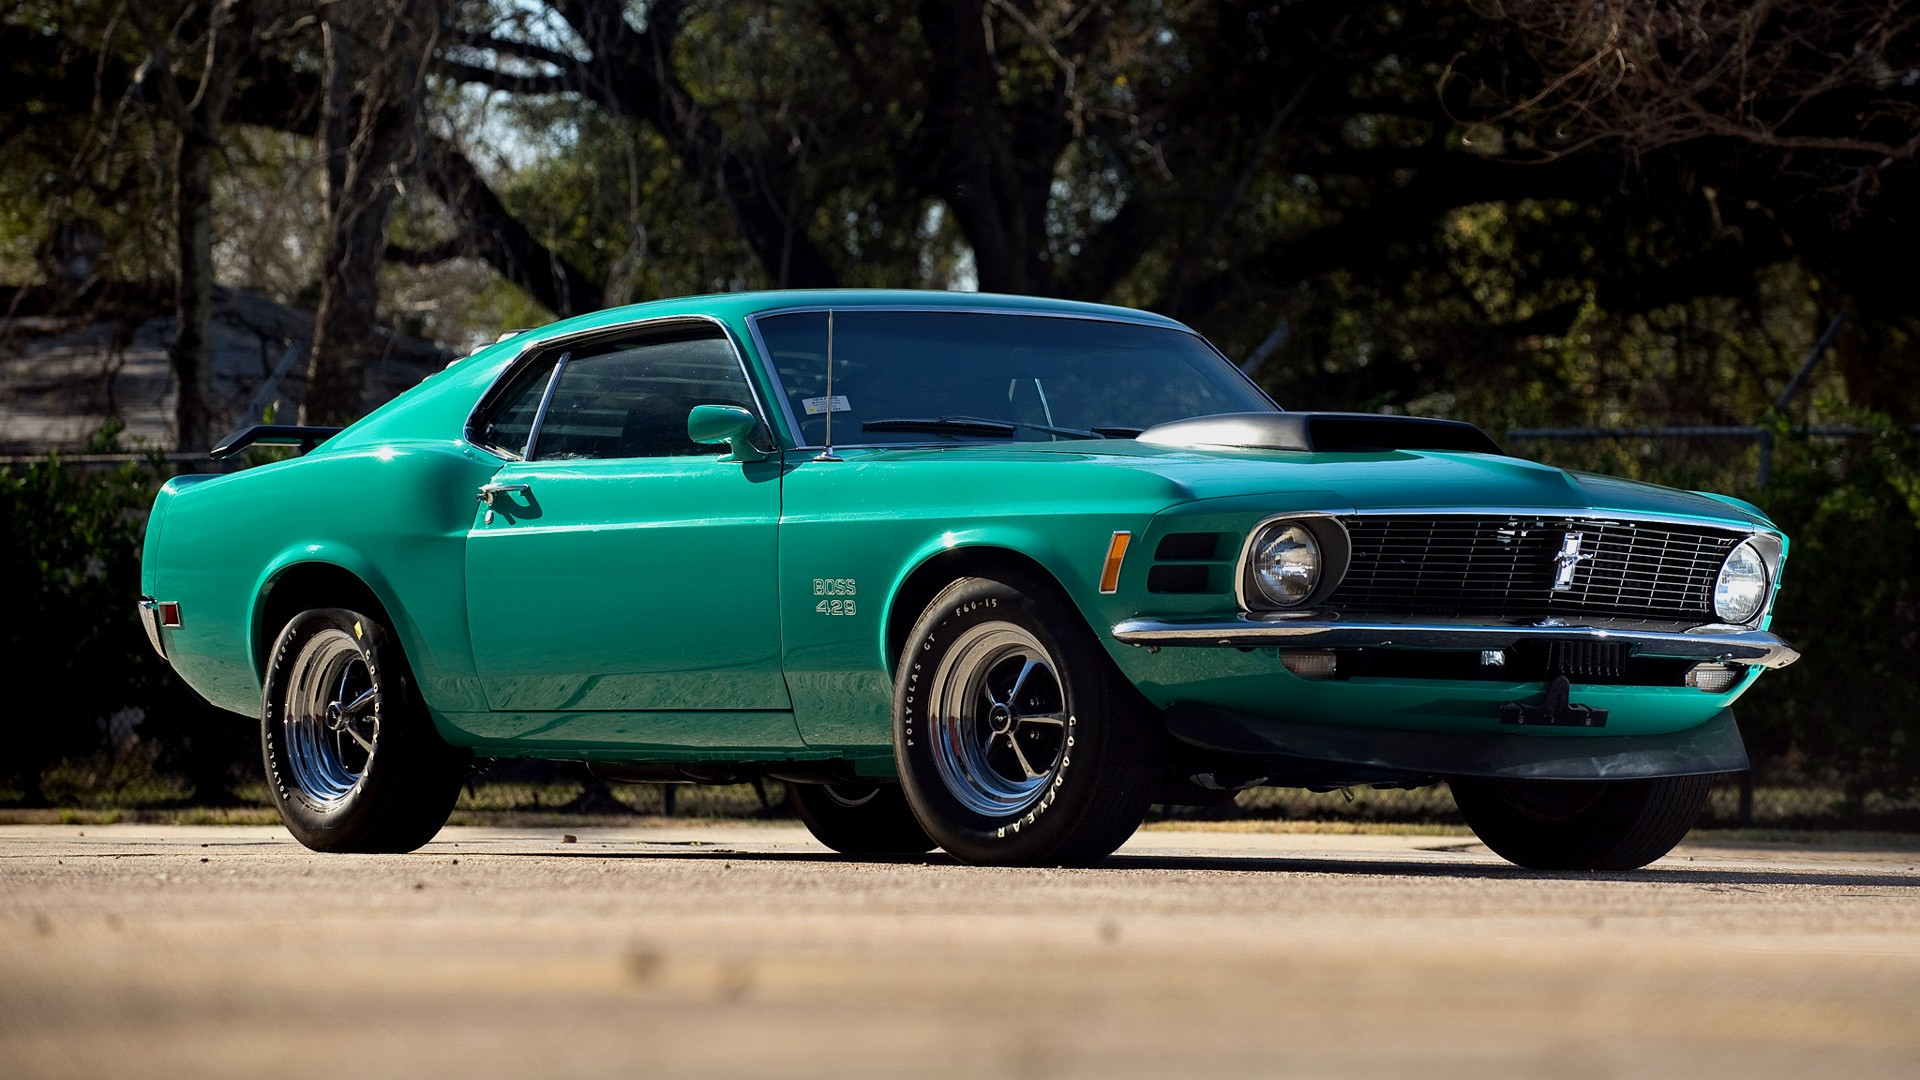 Cars Muscle Wallpaper 1920x1080 Cars Muscle Cars Boss Vehicles 1920x1080